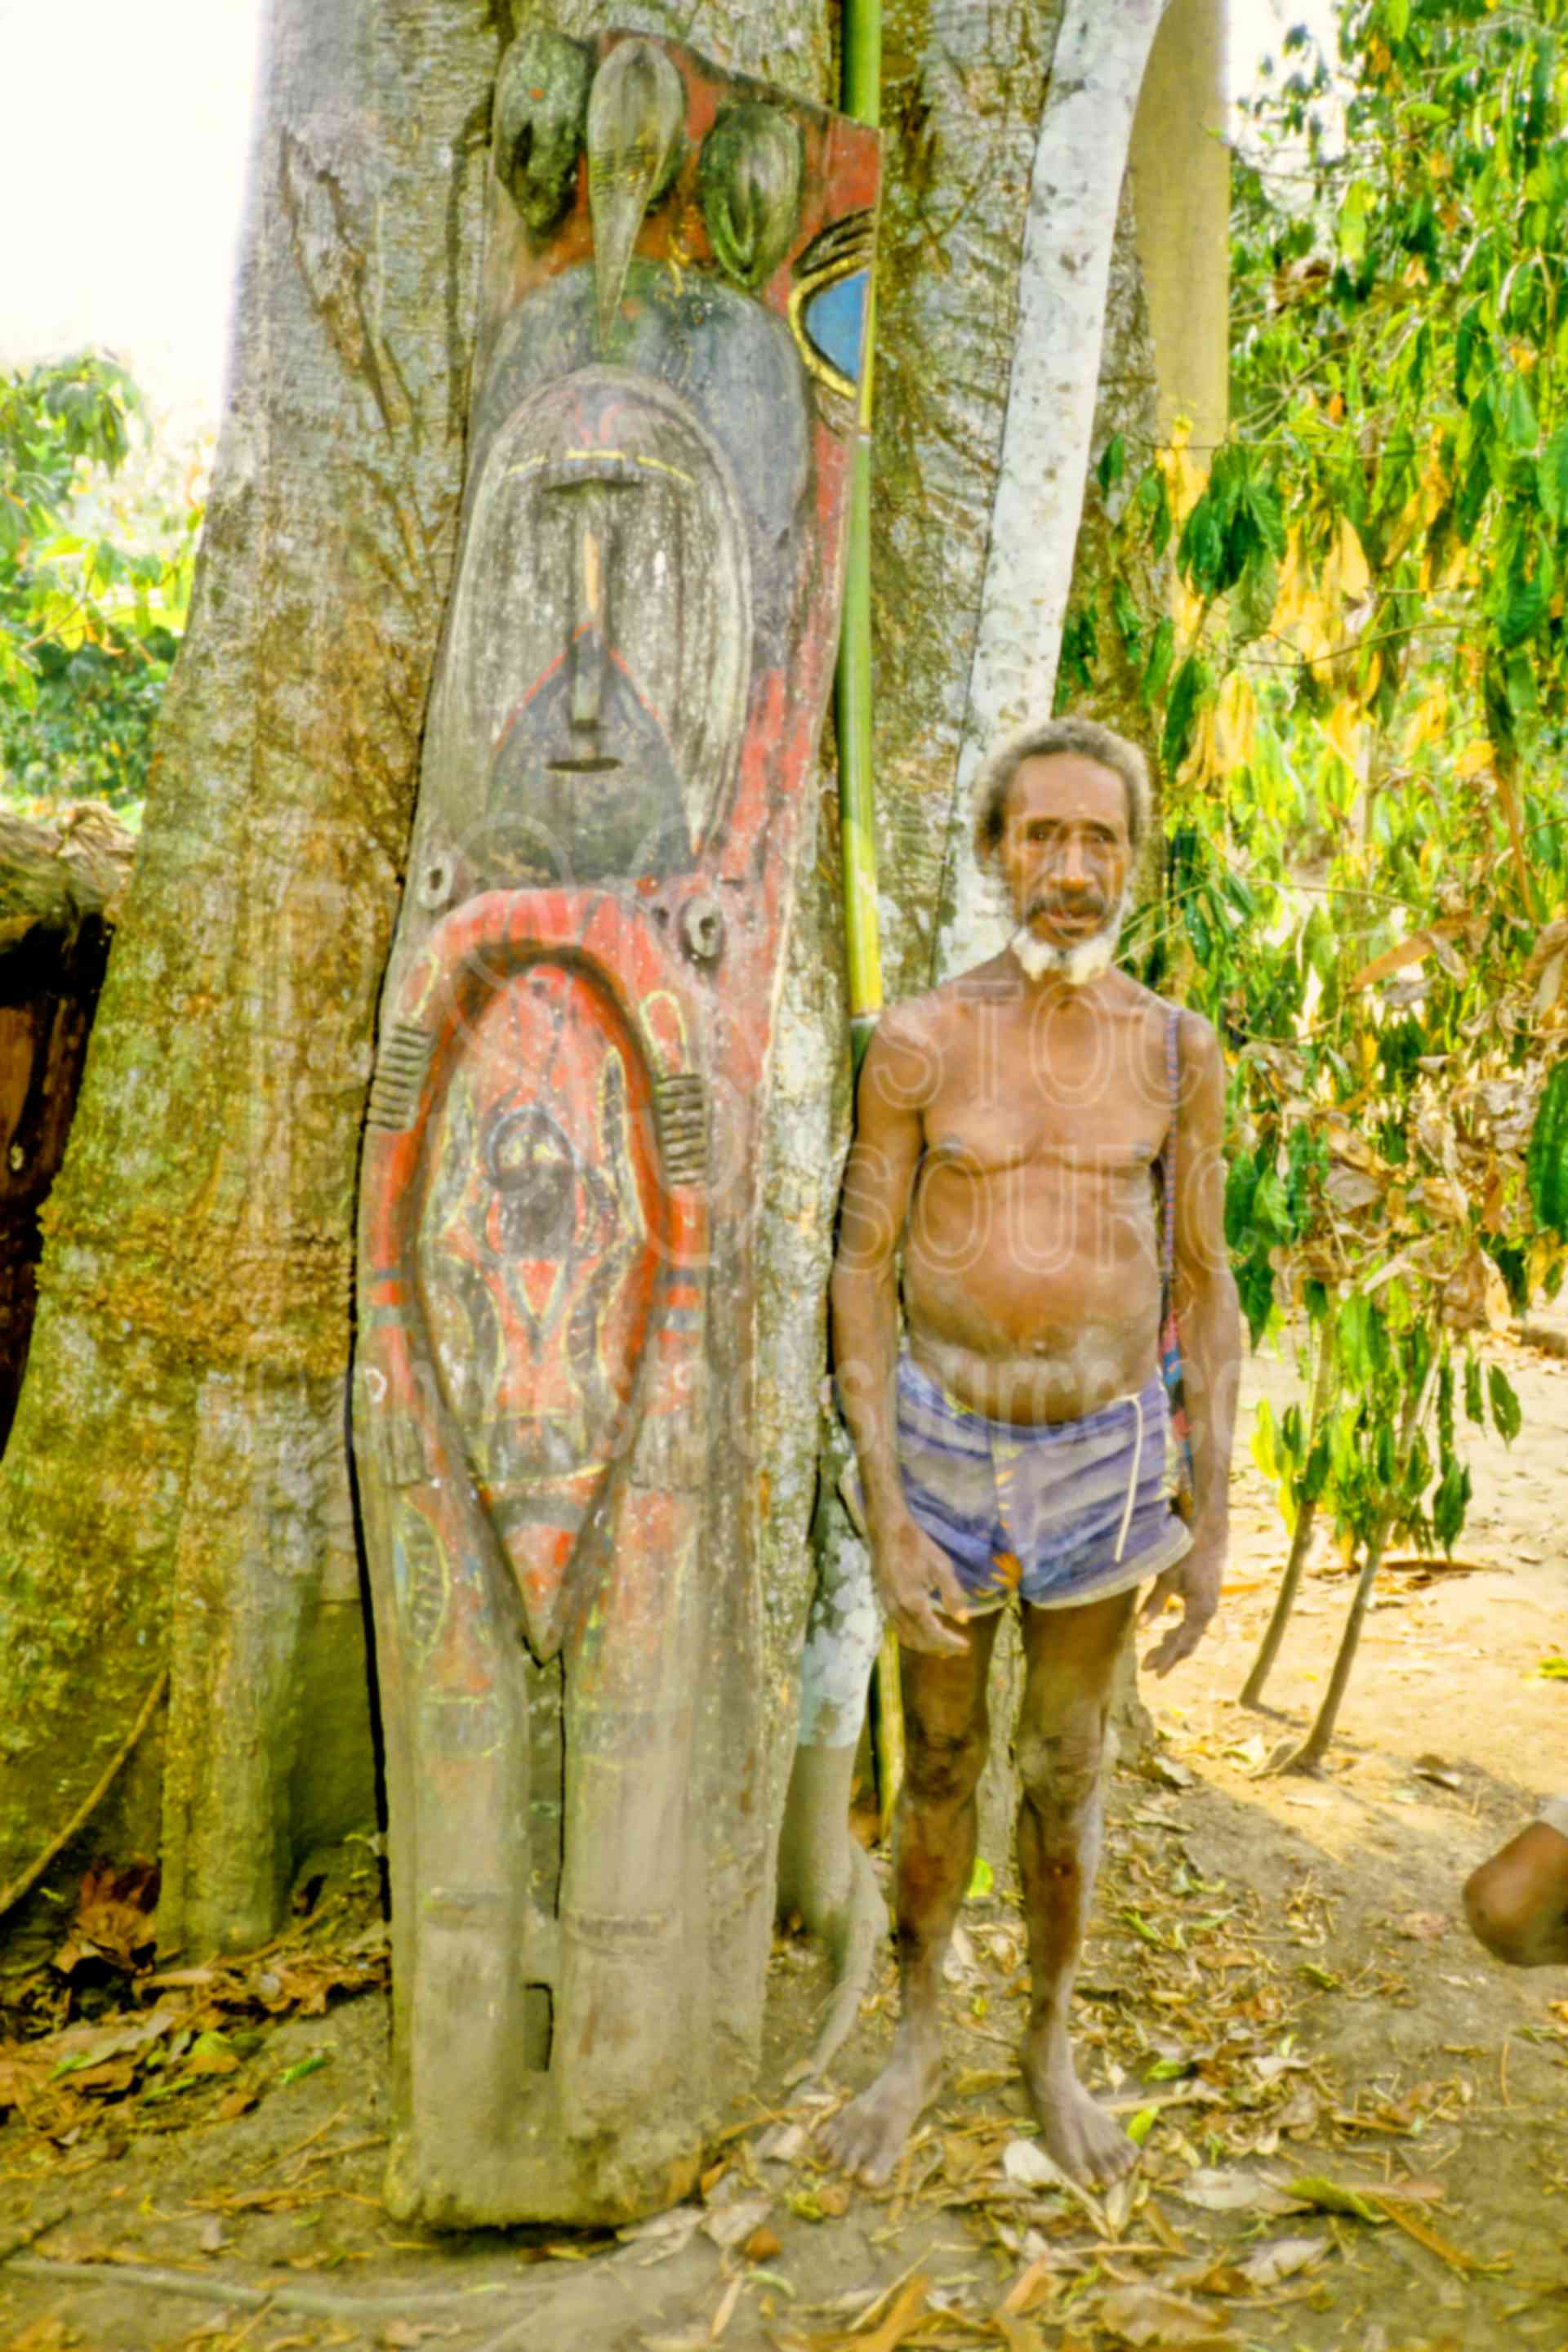 Man with Carving,arts,artifact,carving,mans,png markets